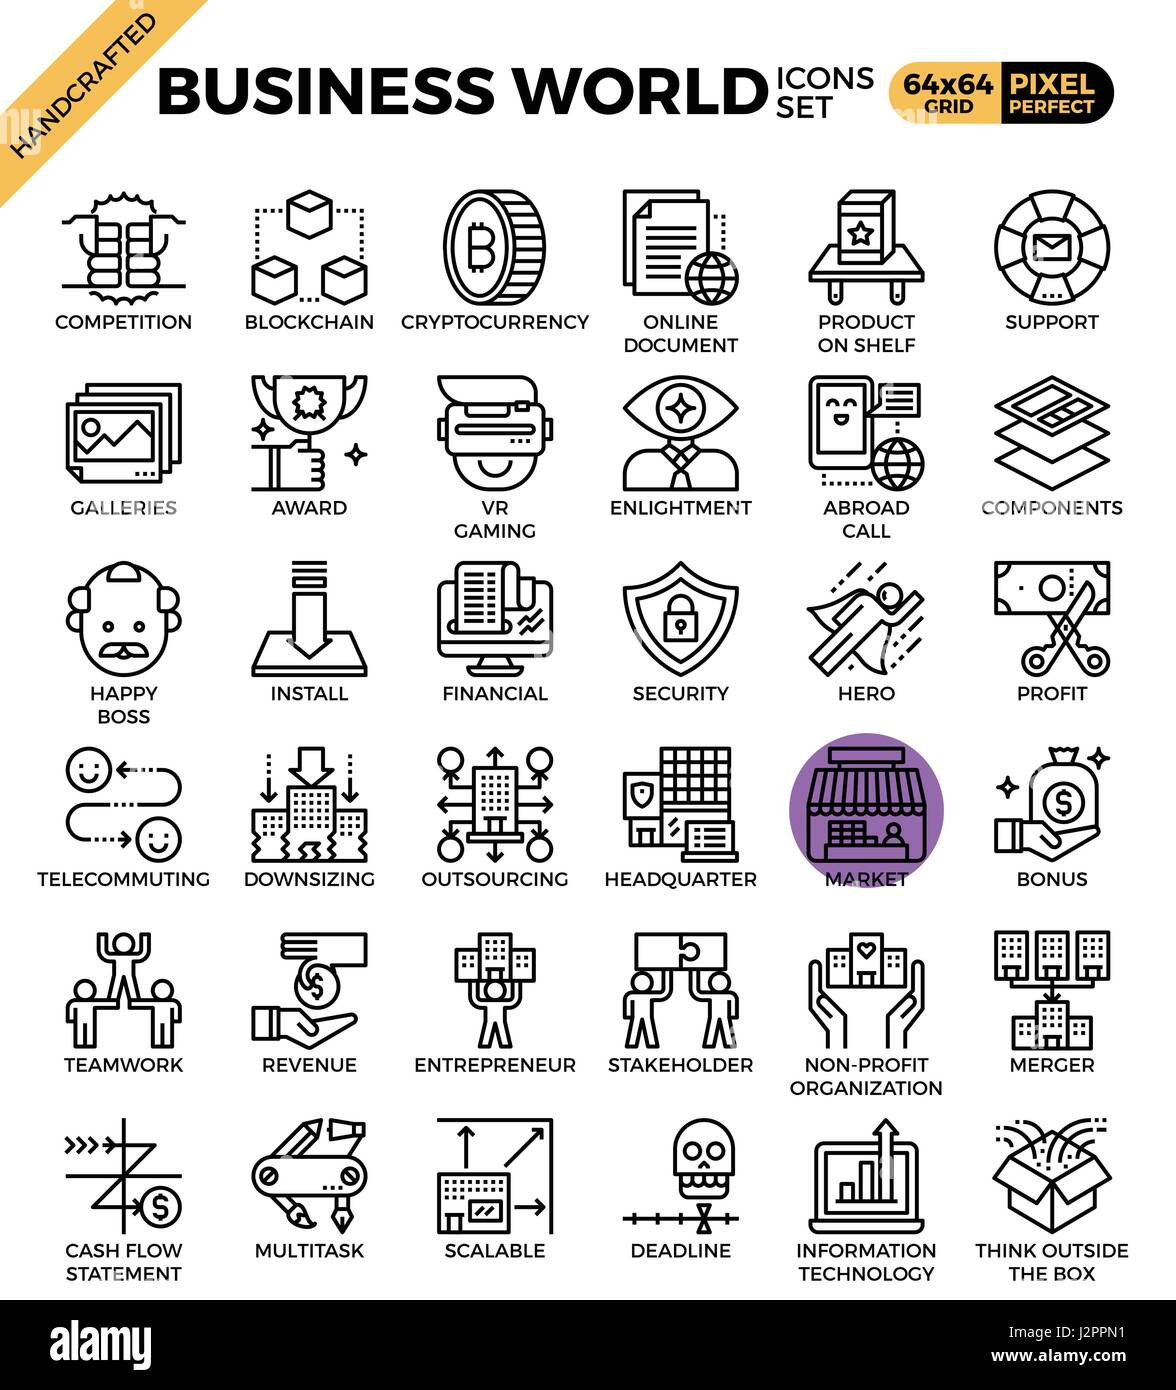 Business World concept detailed line icons set in modern line icon style concept for ui, ux, web, app design - Stock Vector